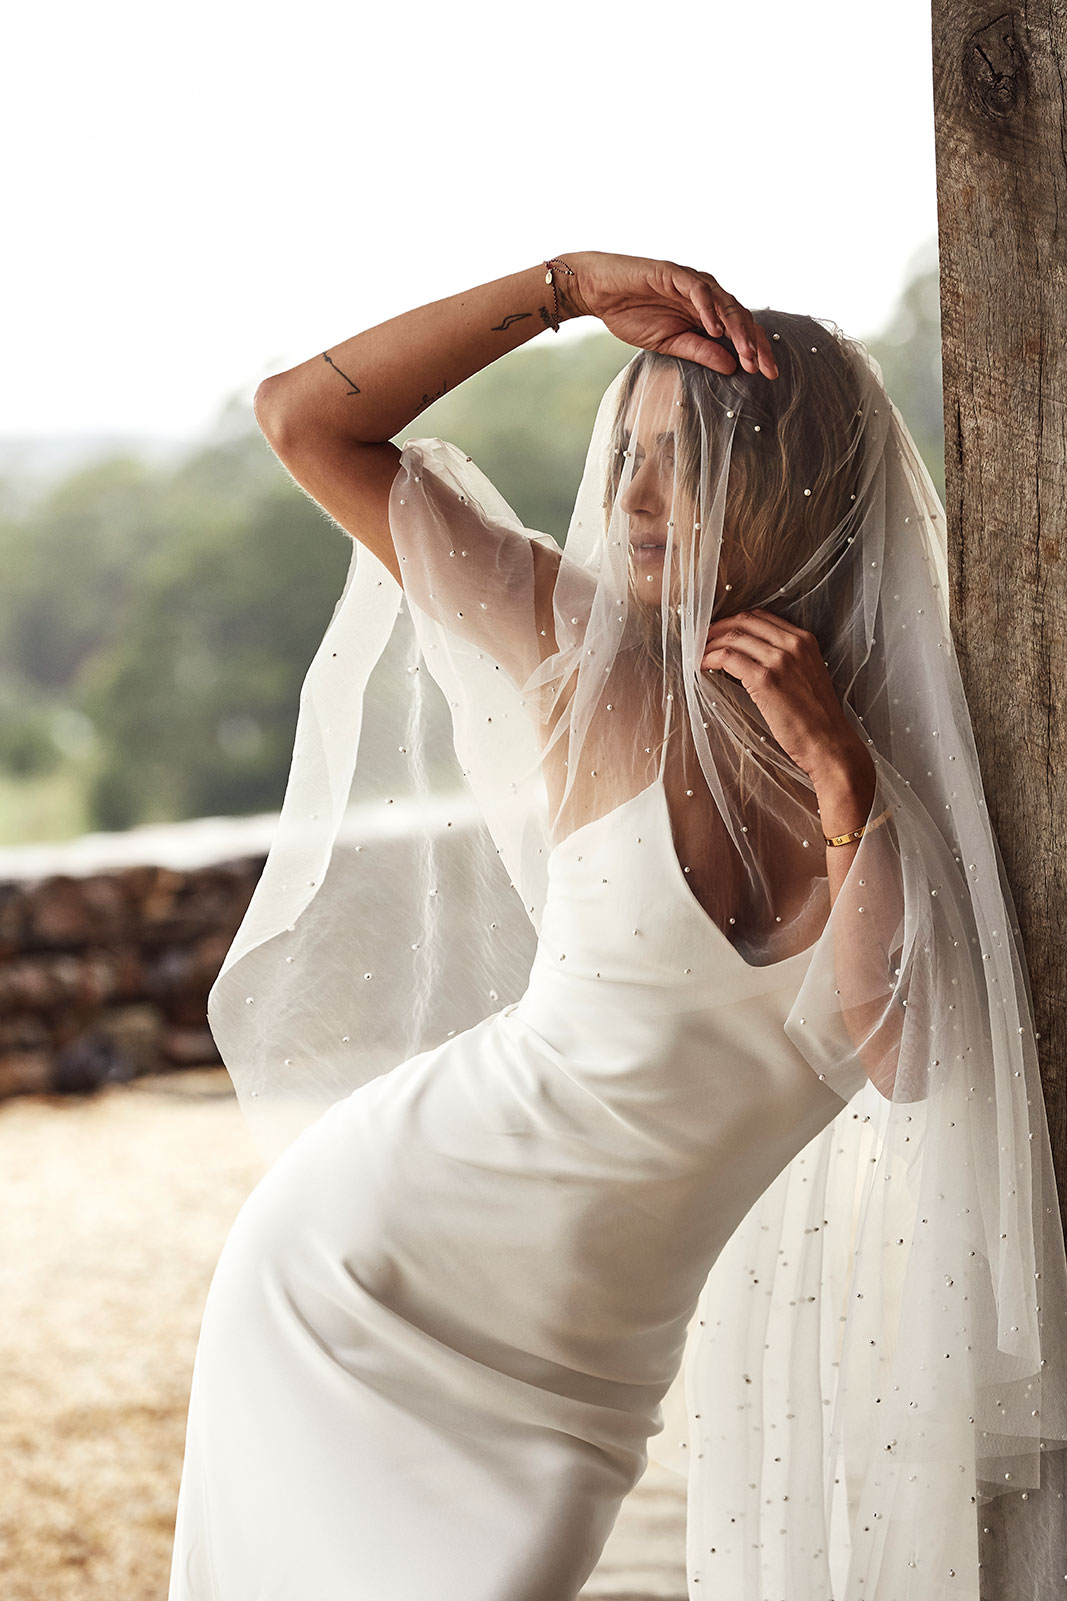 Summer-Gown-Pearly-Veil-Grace-Loves-Lace-La-Bamba-Collection-1-Low-Res.jpg